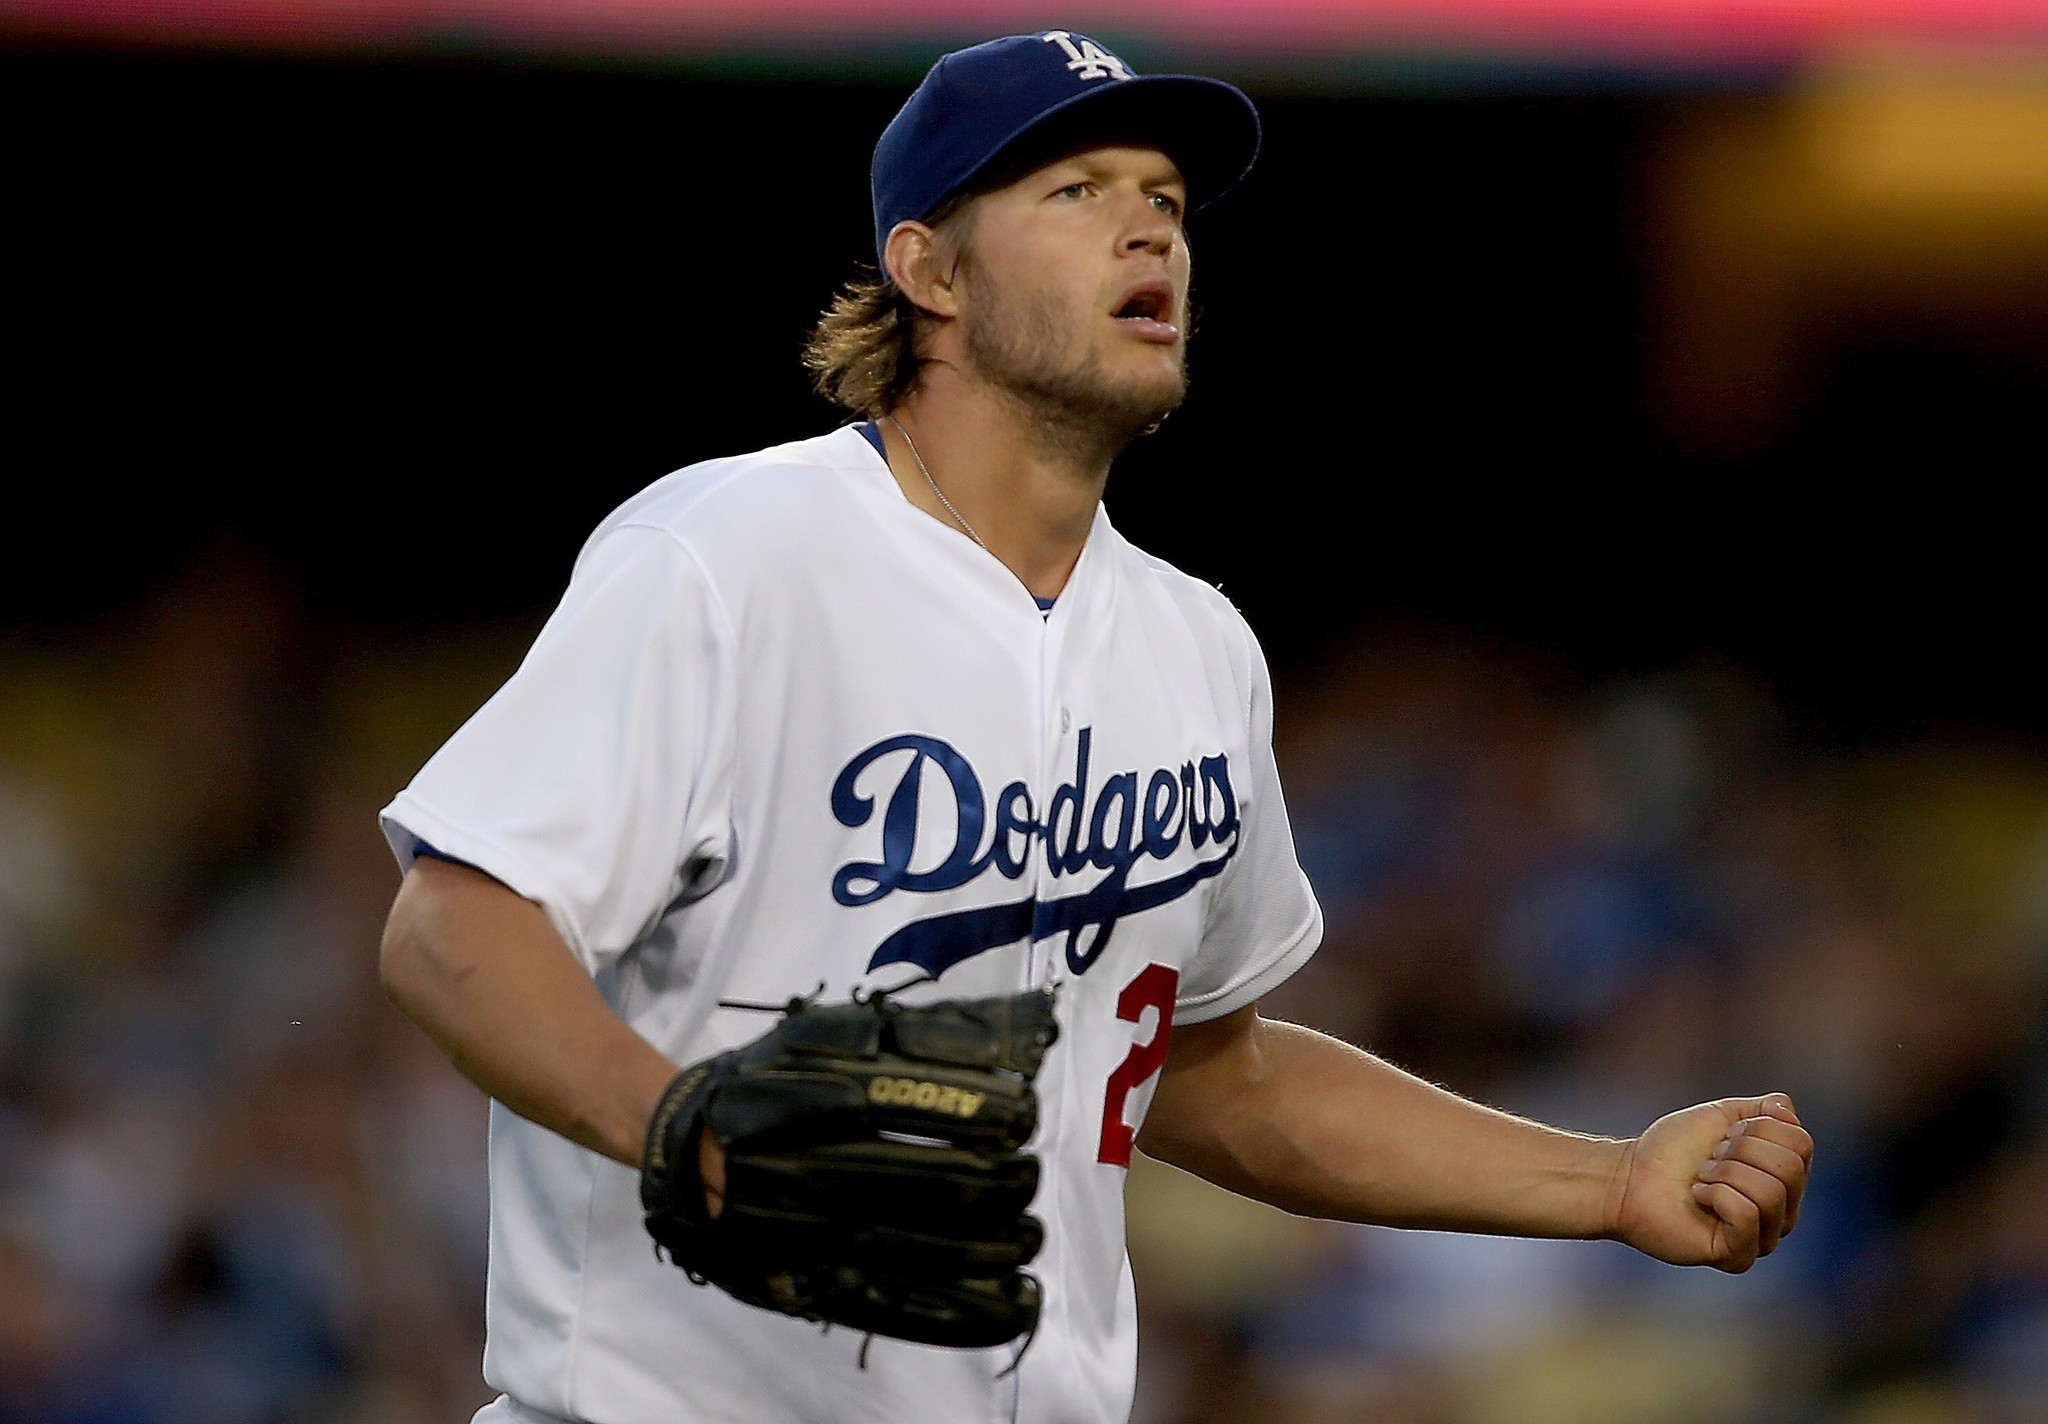 Dodgers make it six straight as Clayton Kershaw edges Braves, 2-1